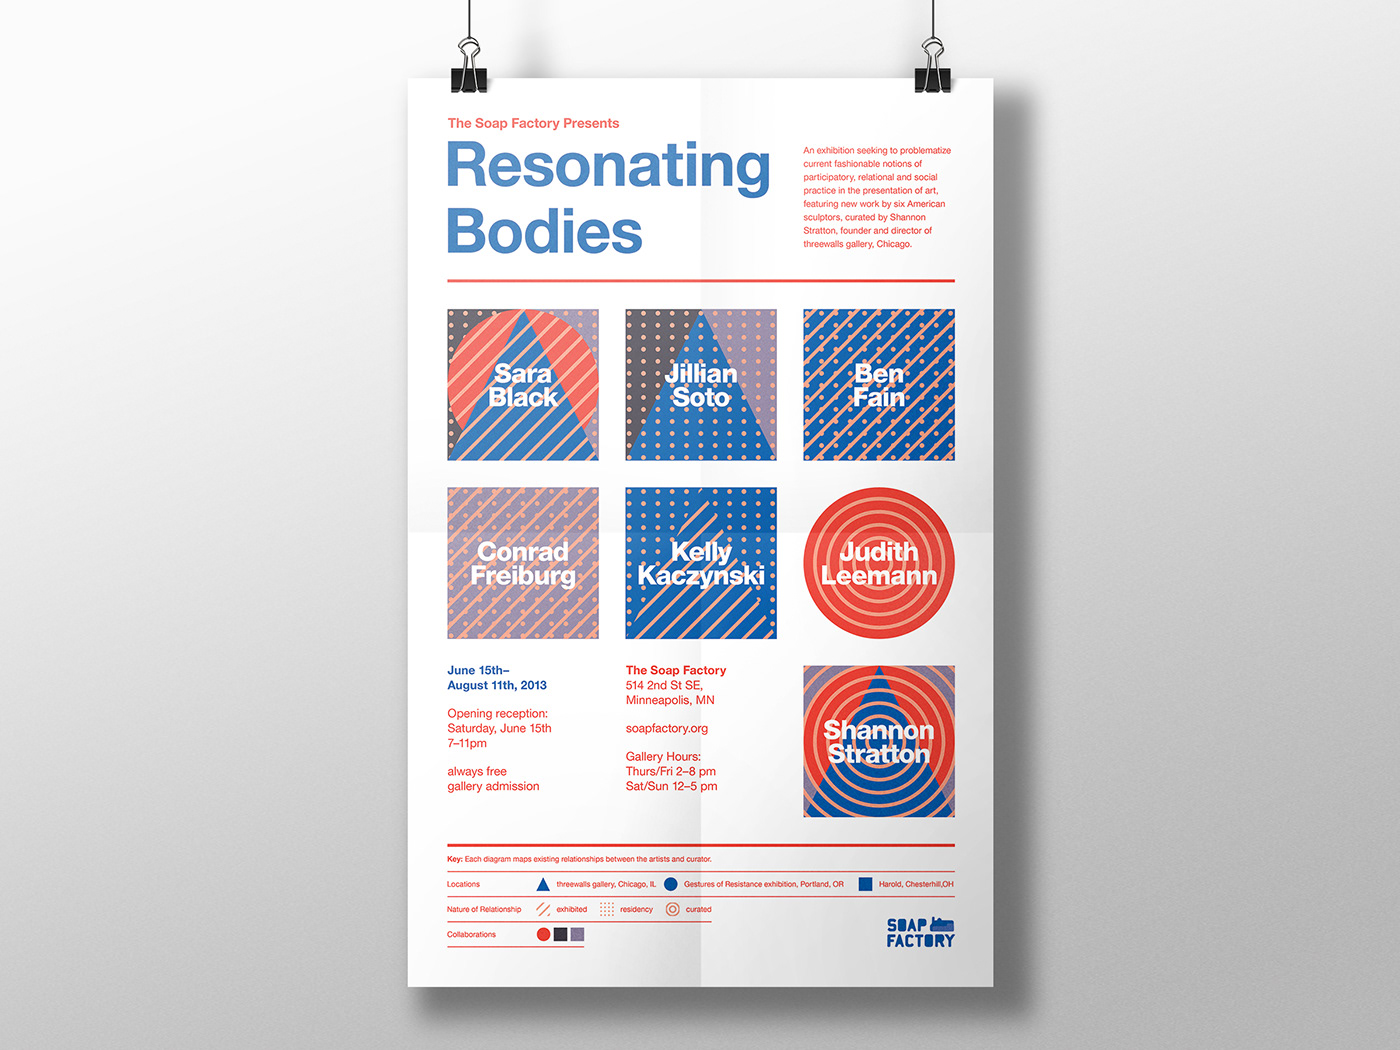 Resonating Bodies exhibition poster